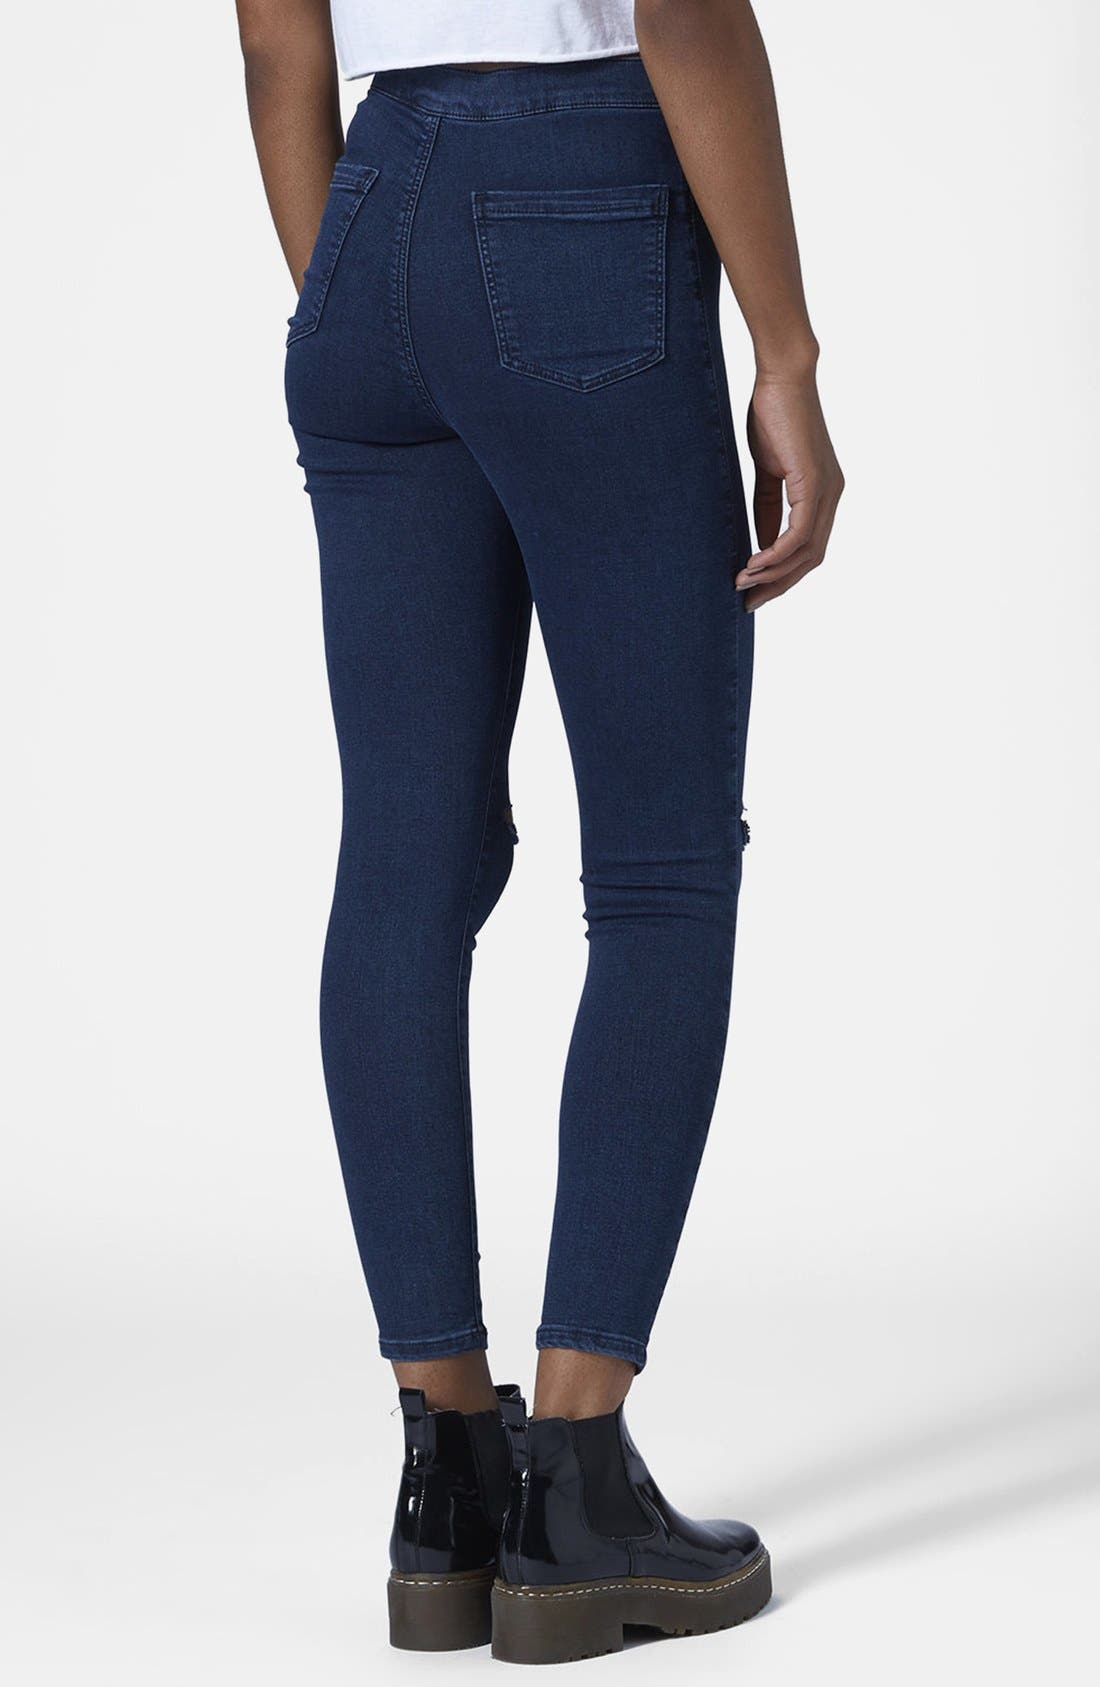 Alternate Image 2  - Topshop Moto 'Joni' Ripped High Rise Skinny Jeans (Blue) (Petite)